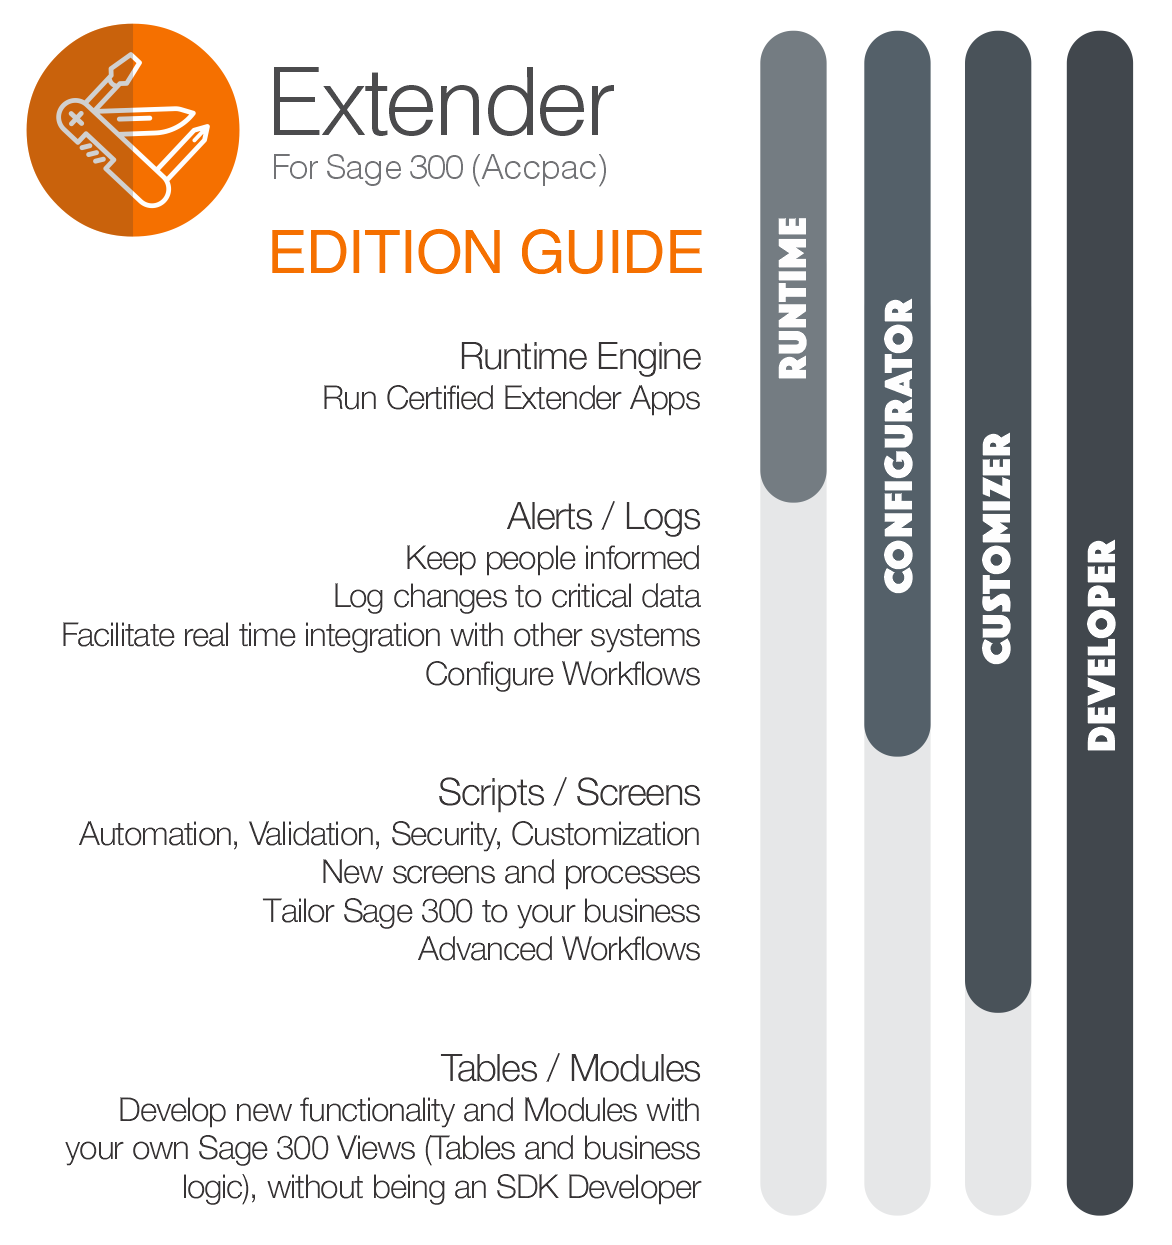 Extender Edition Guide